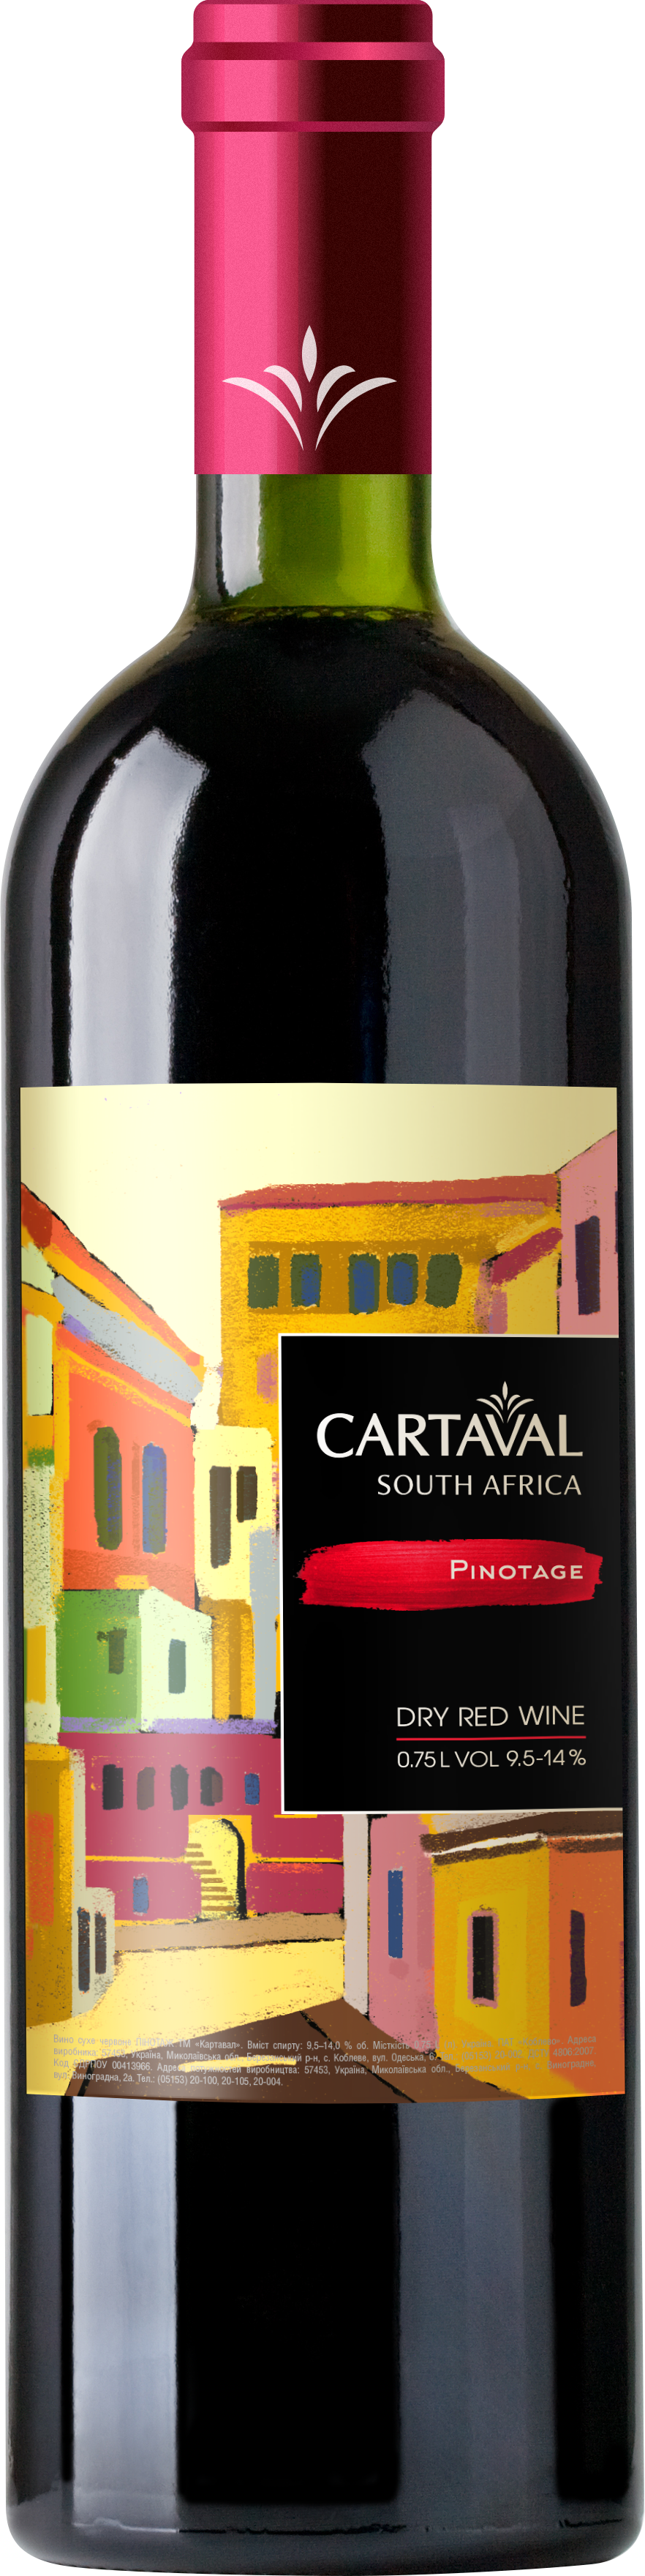 Pinotage South Africa Объем 0,75 л; Крепость 9,5-14 %